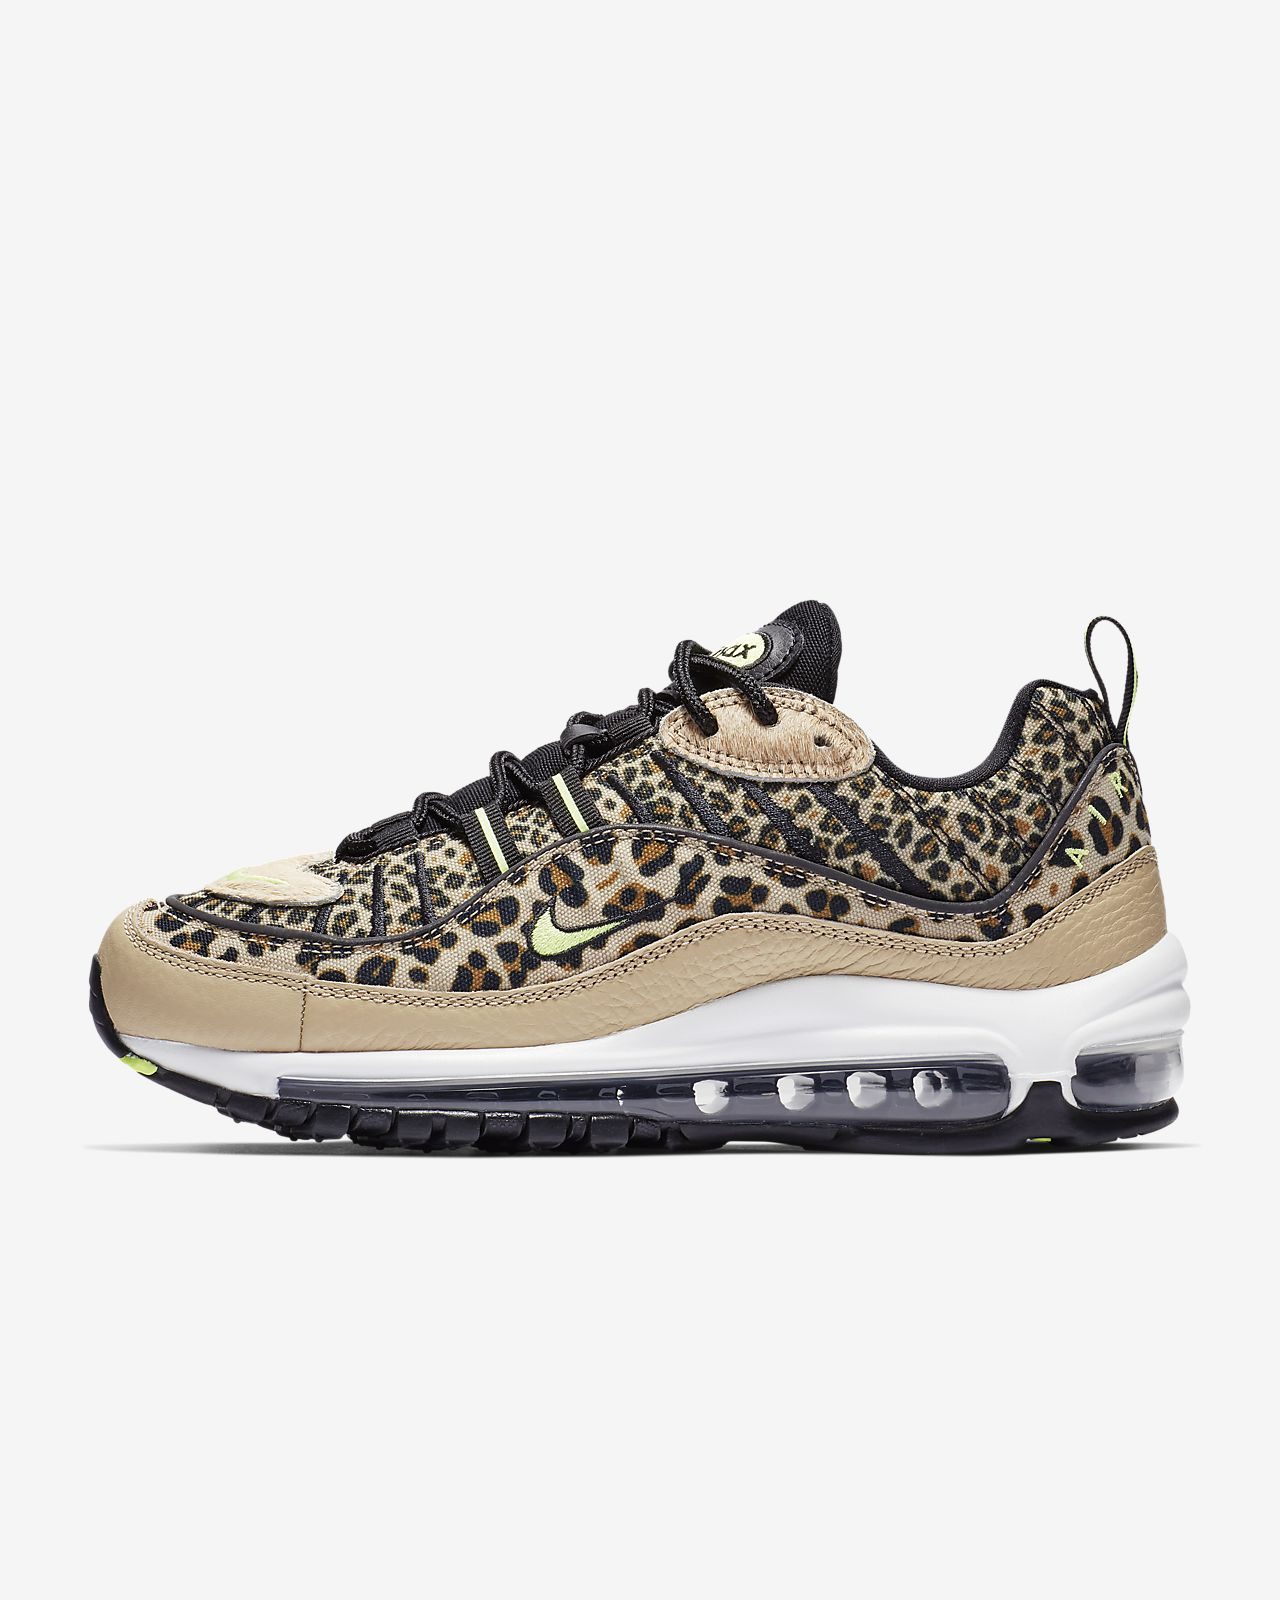 776f4d00fe Nike Air Max 98 Premium Animal Women's Shoe. Nike.com